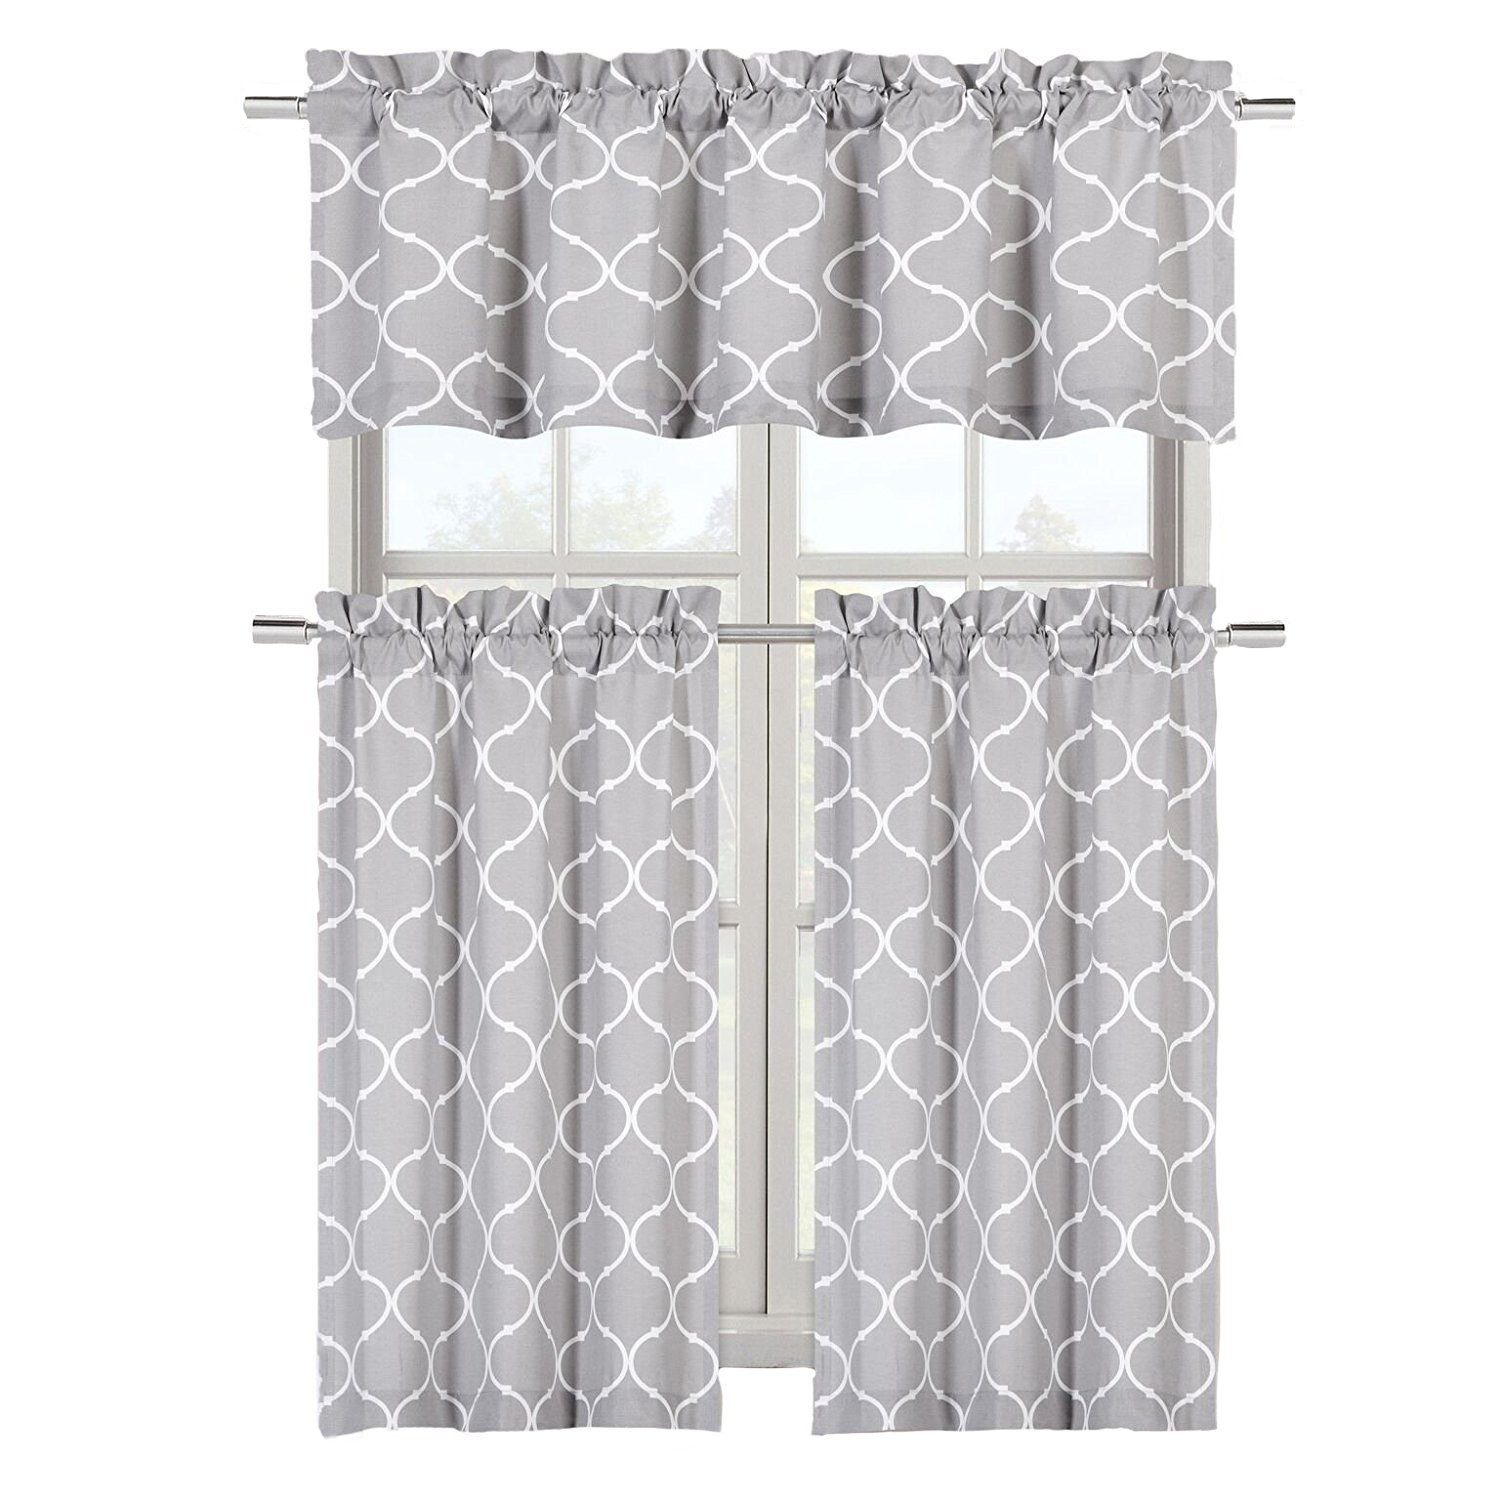 Regal Home Collections Shabby Trellis Kitchen Curtain Tier & Valance Set - Assorted Colors (Maison Gray)